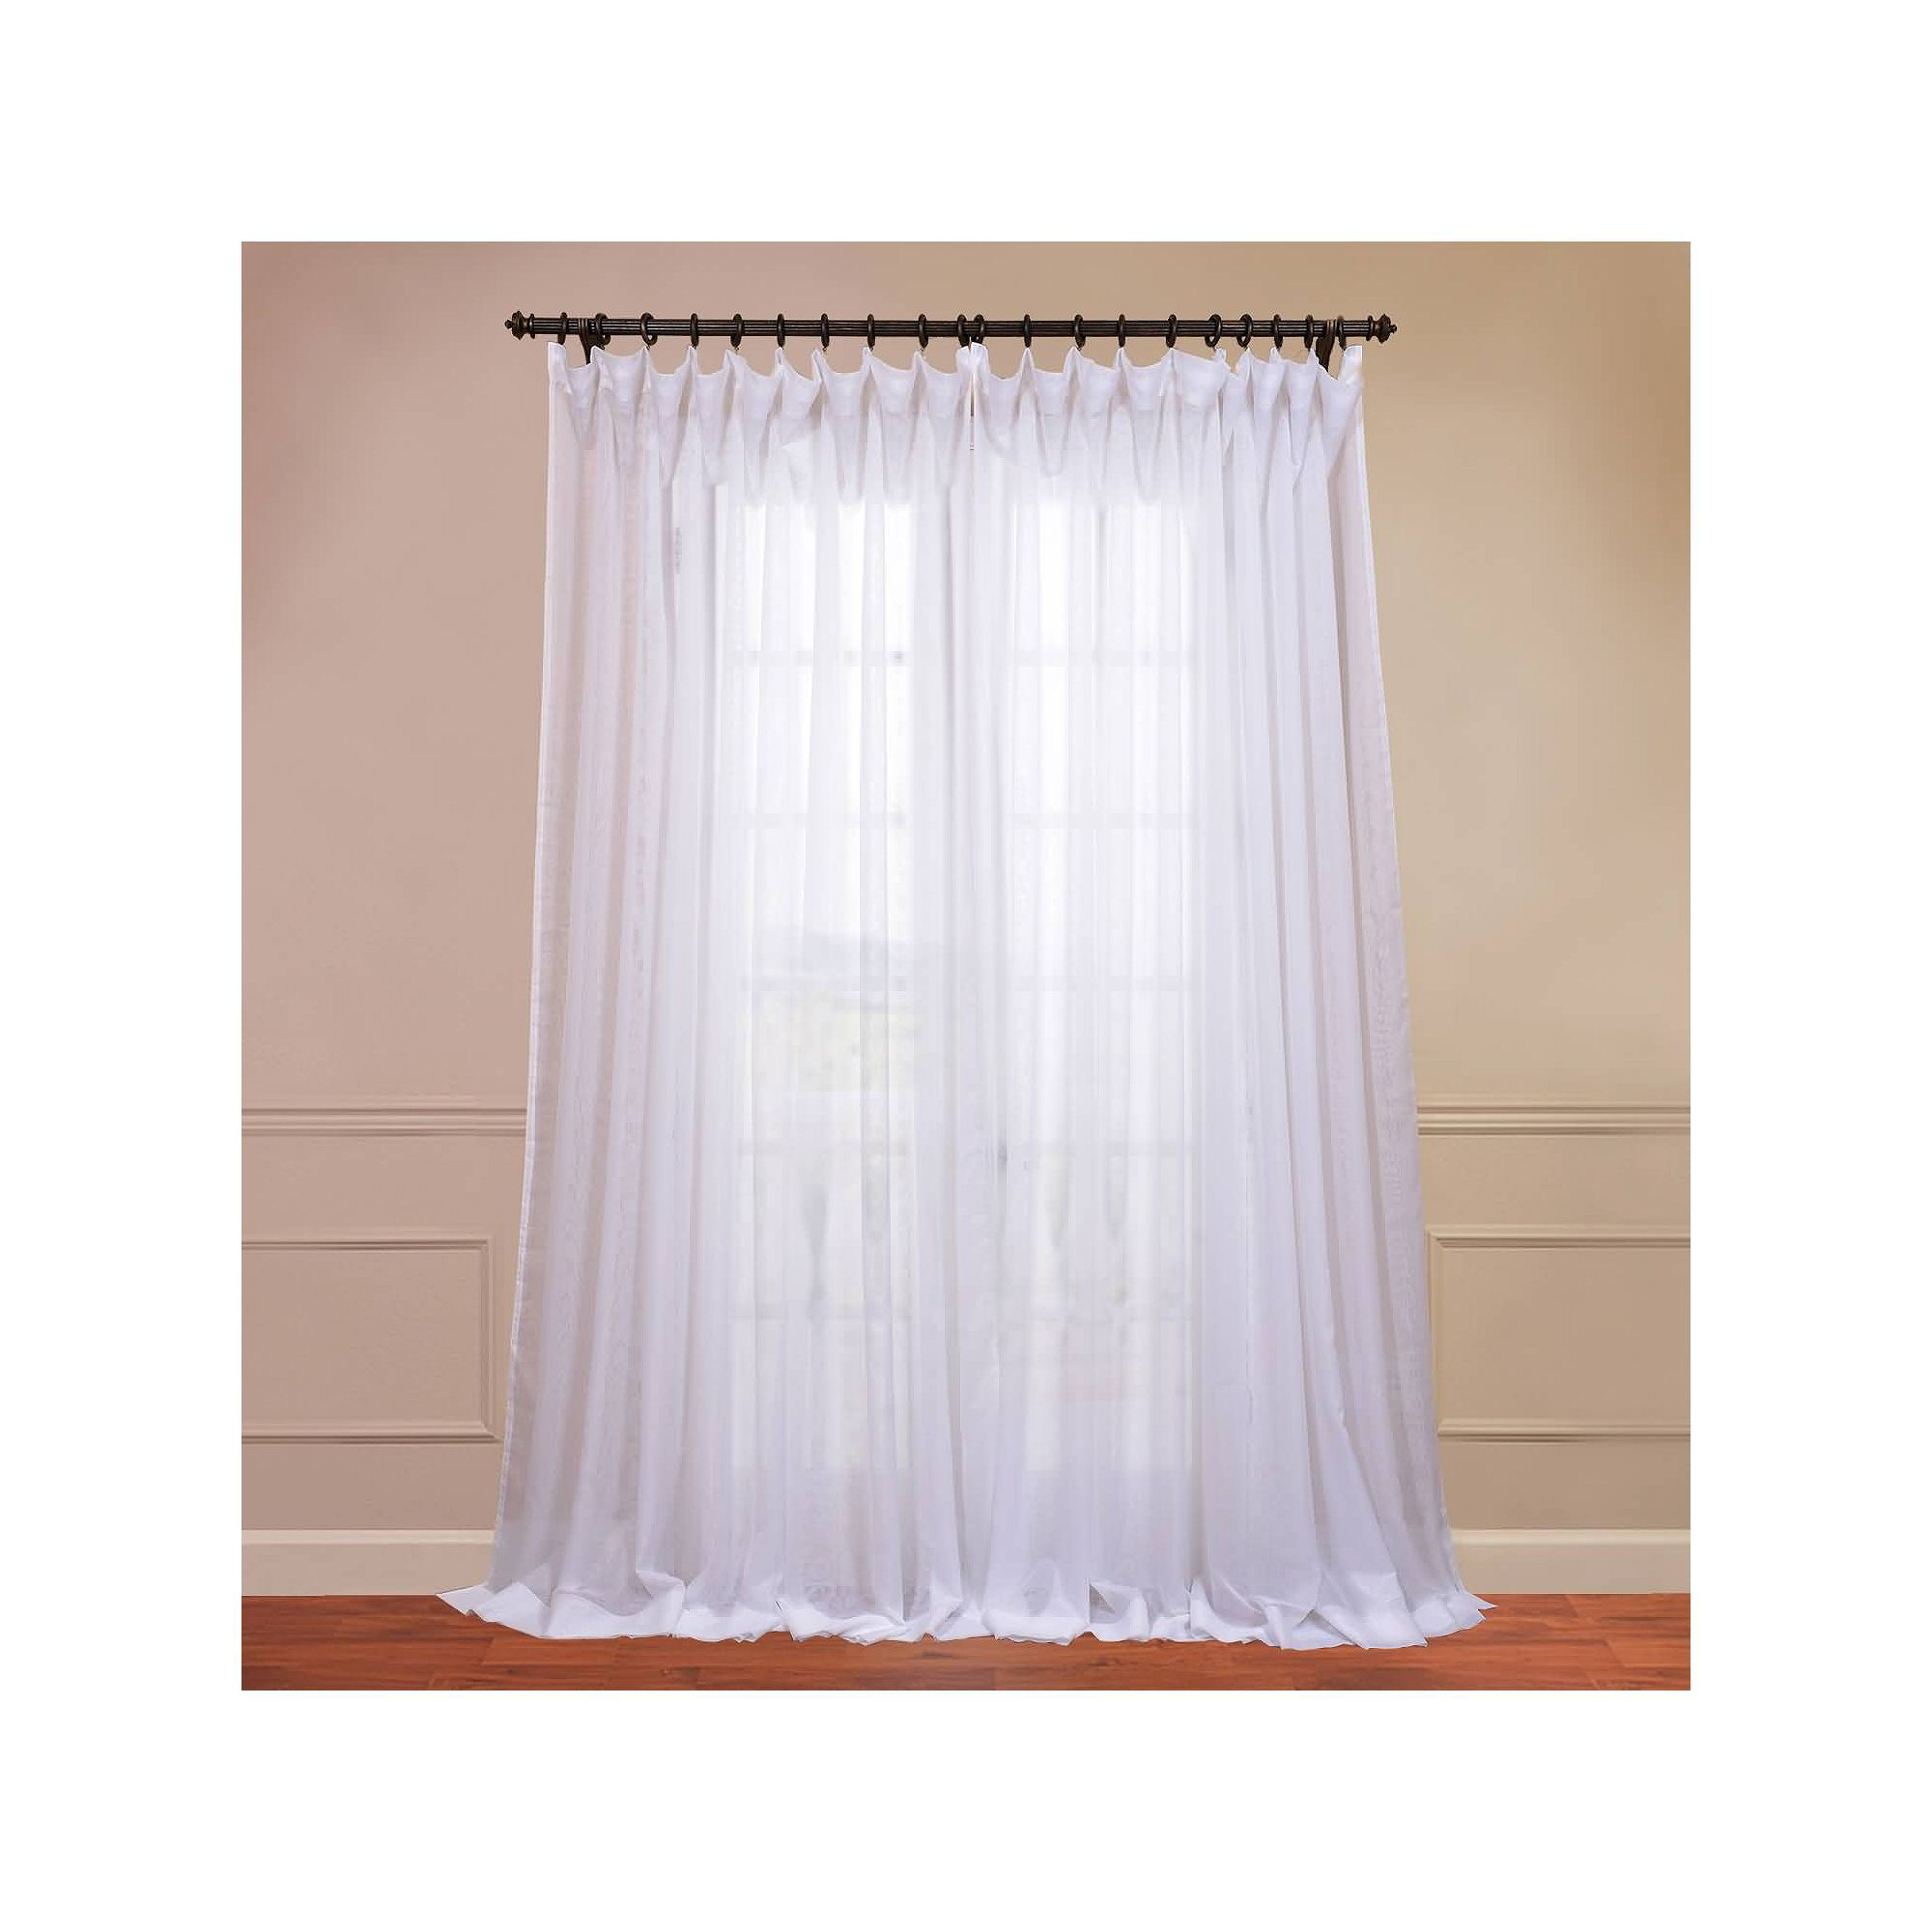 size outlet of jcpenney kohls end valances room sheer to choose treatments full kitchen for short shades curtains curtain rods high living amazon drapes w panel window discount and how